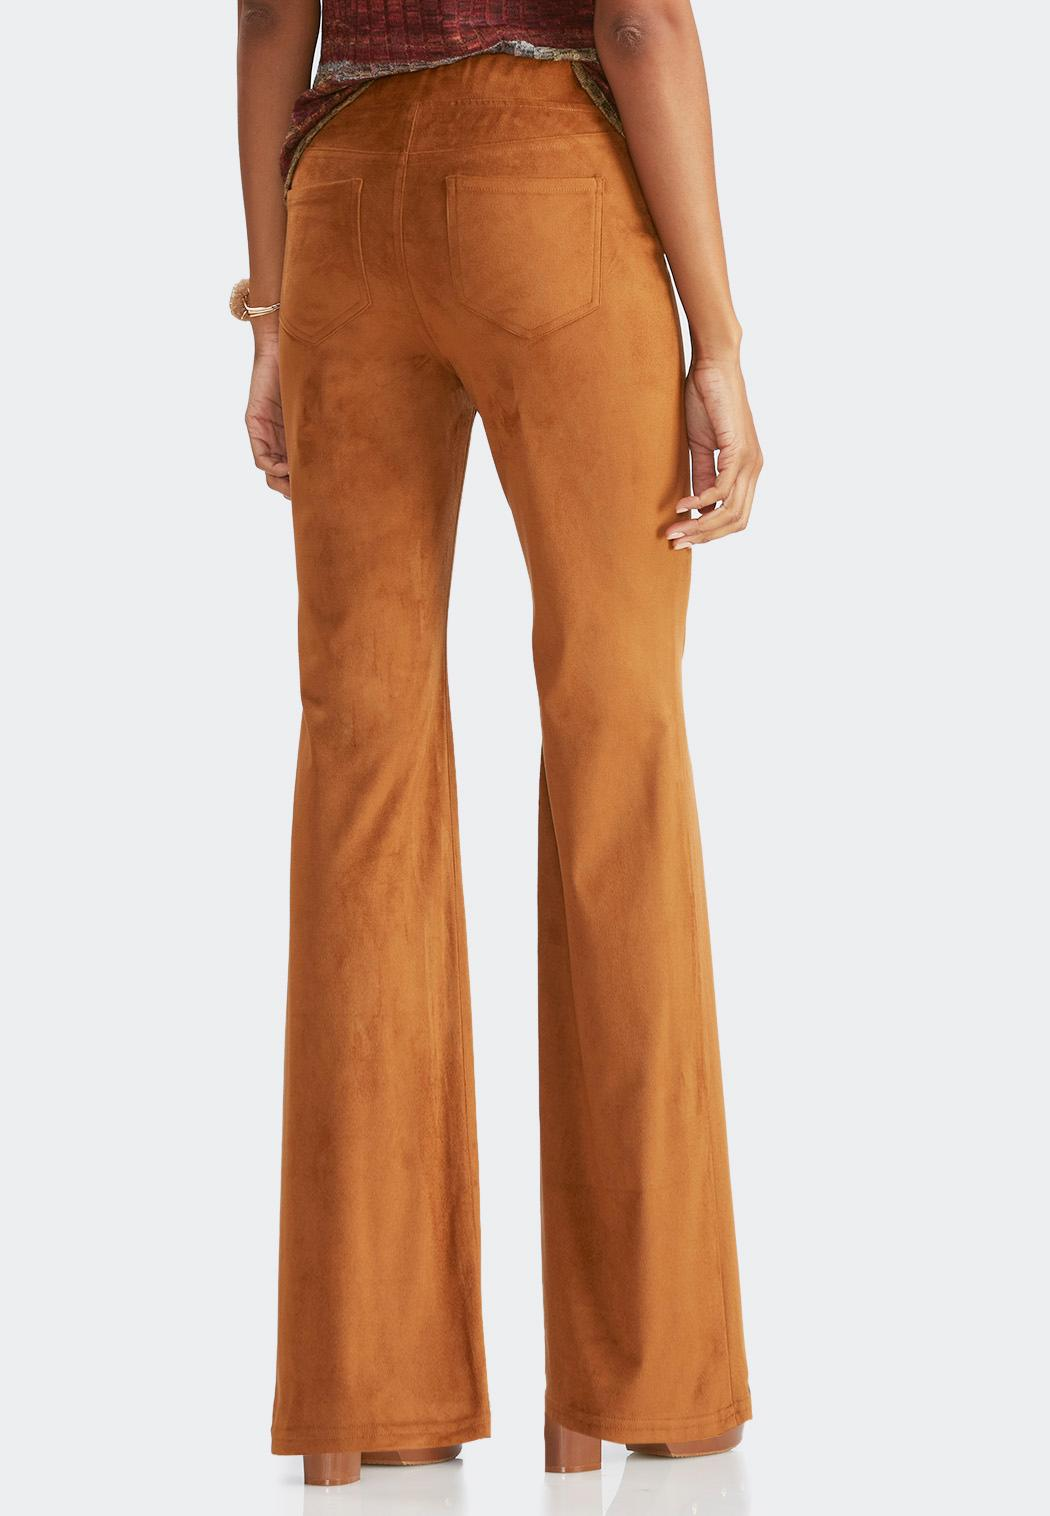 Shop Banana Republic's Devon Legging-Fit Vegan Leather Ankle Pant: A sleek legging with the polish and structure of your favorite pants. Made in a luxe, vegan leather with a hint of stretch for a flattering, comfortable fit.,Elastic waistband. Pull-on style.,Darts at back for a figure-flattering fit.